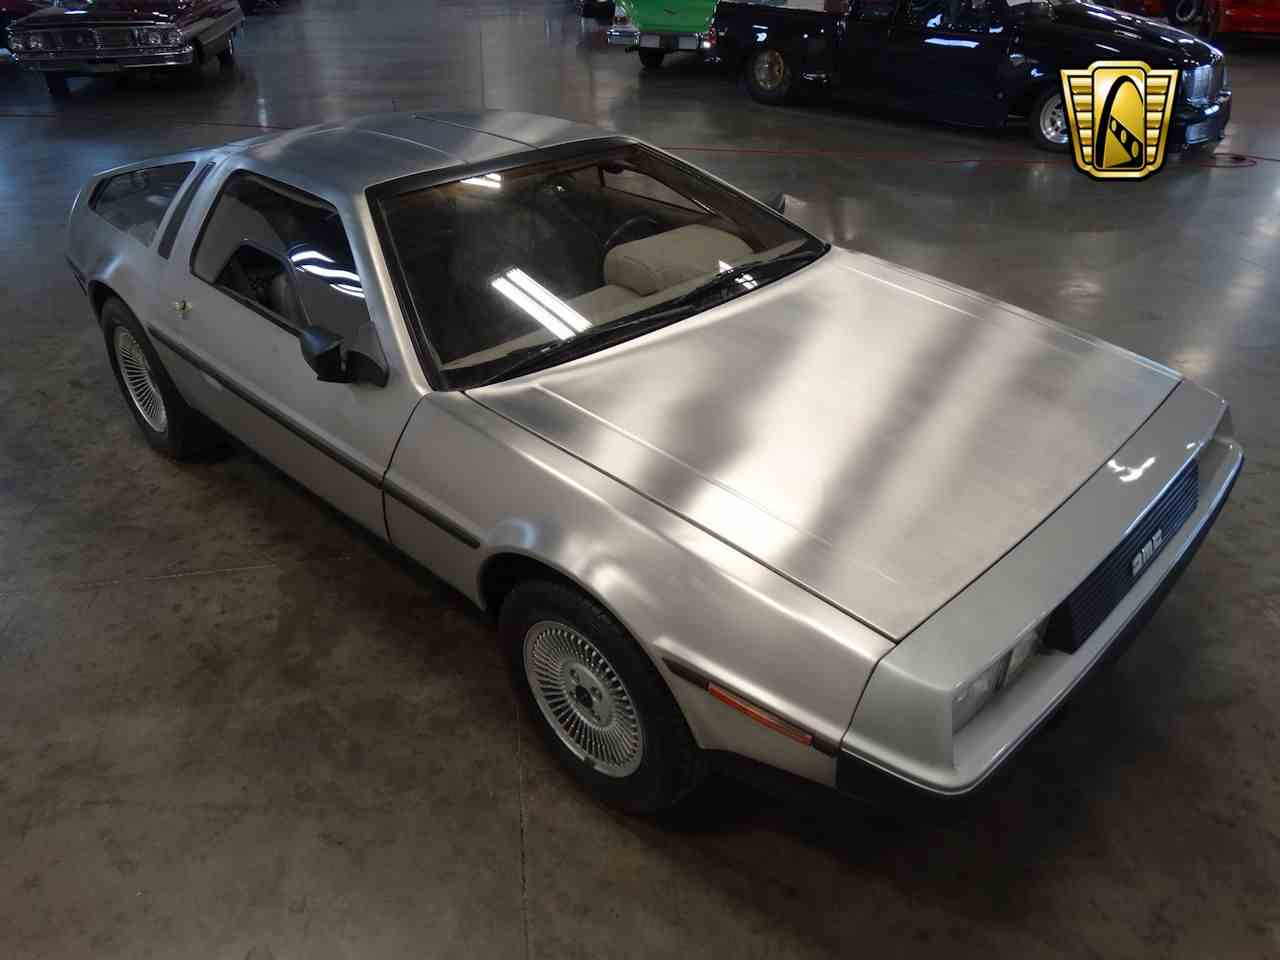 Large Picture of '81 DeLorean DMC-12 Offered by Gateway Classic Cars - Nashville - M2L4